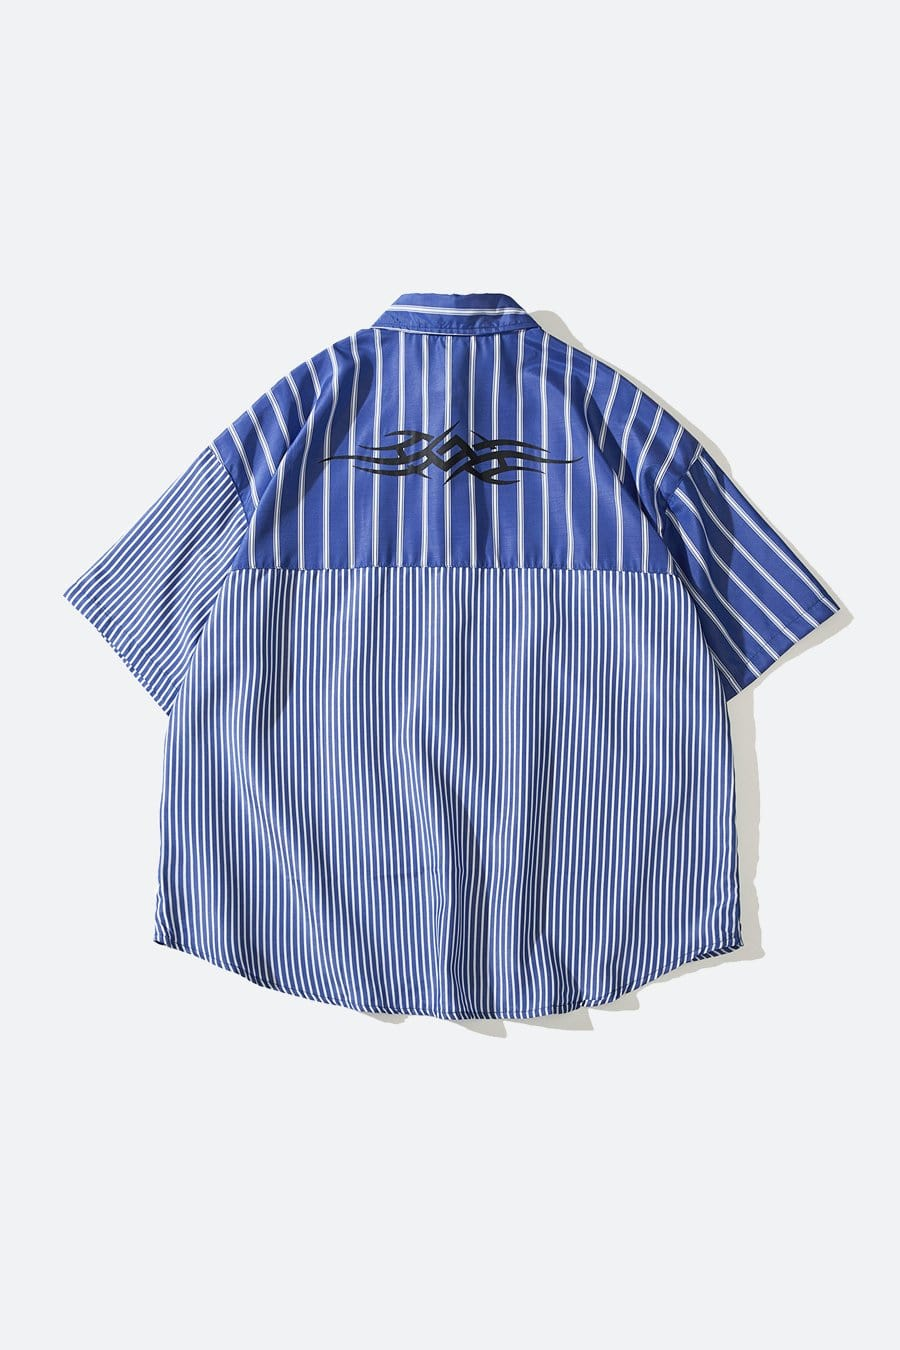 Patched Line Button Up